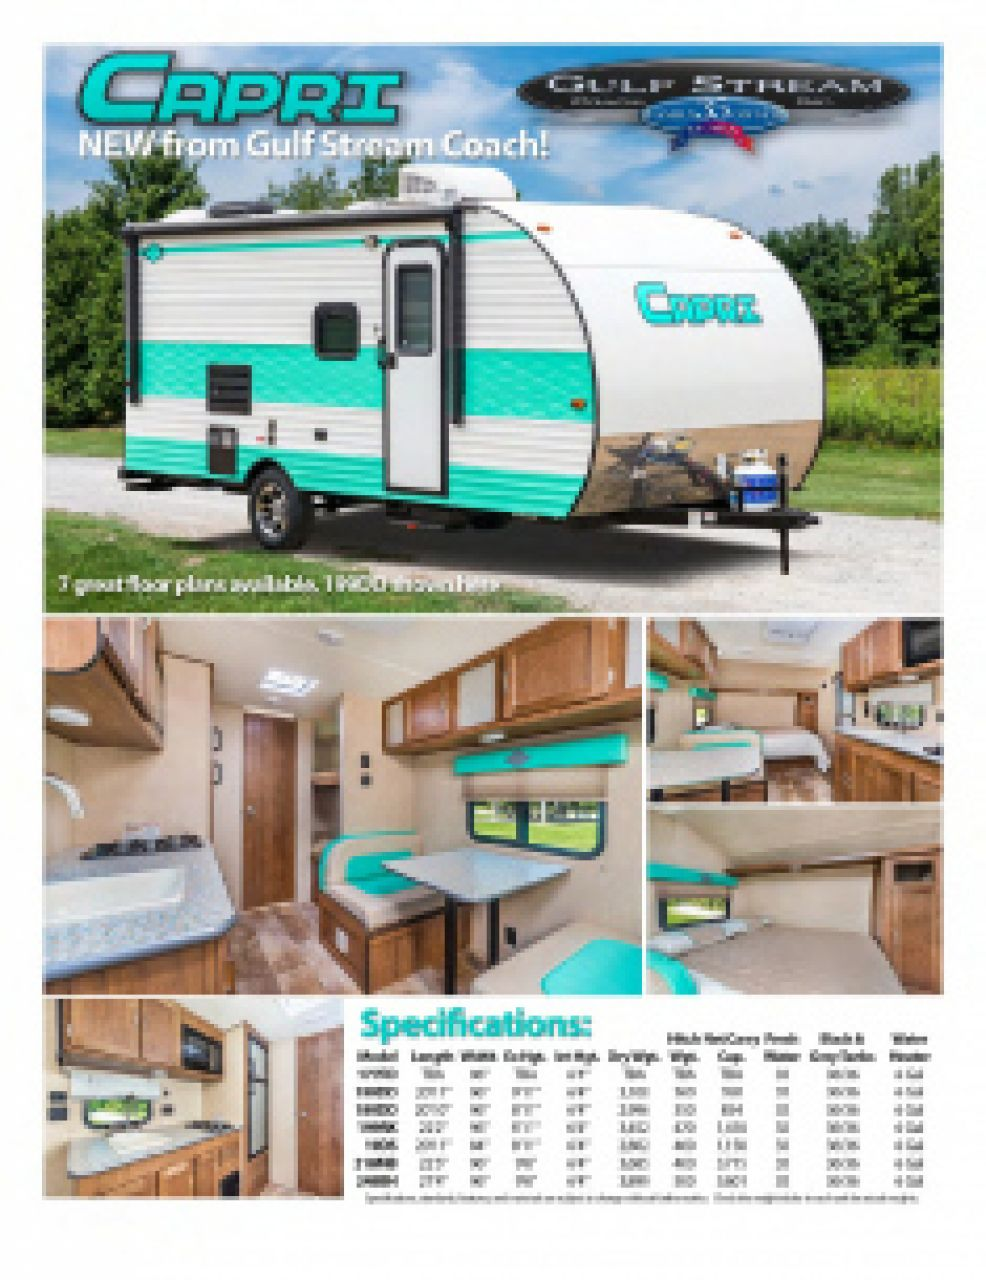 2019 Gulf Stream Capri RV Brochure Cover